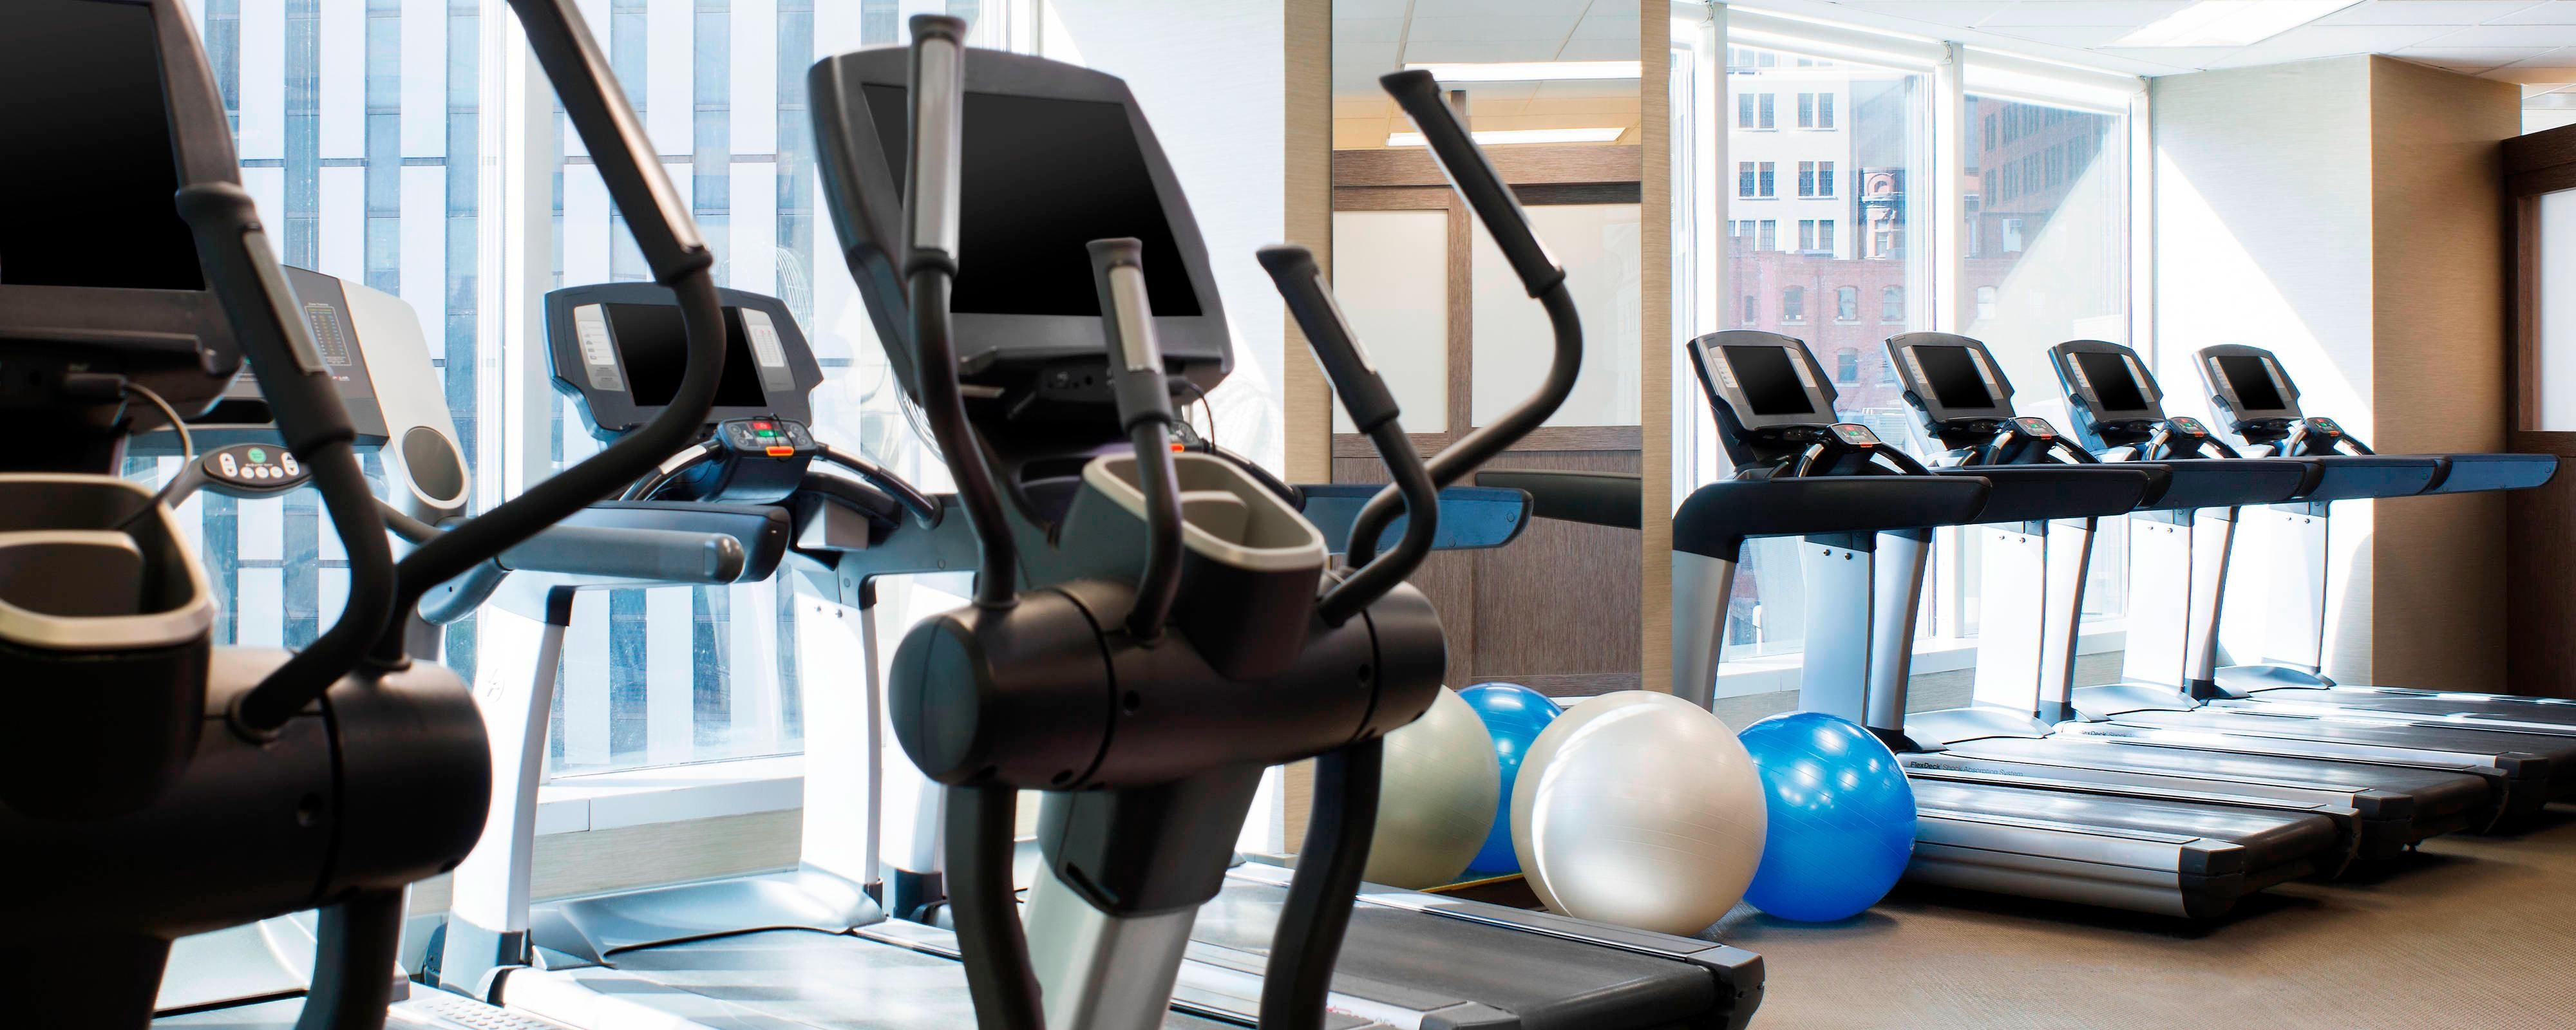 Hotel Gym in Downtown Pittsburgh | The Westin Pittsburgh